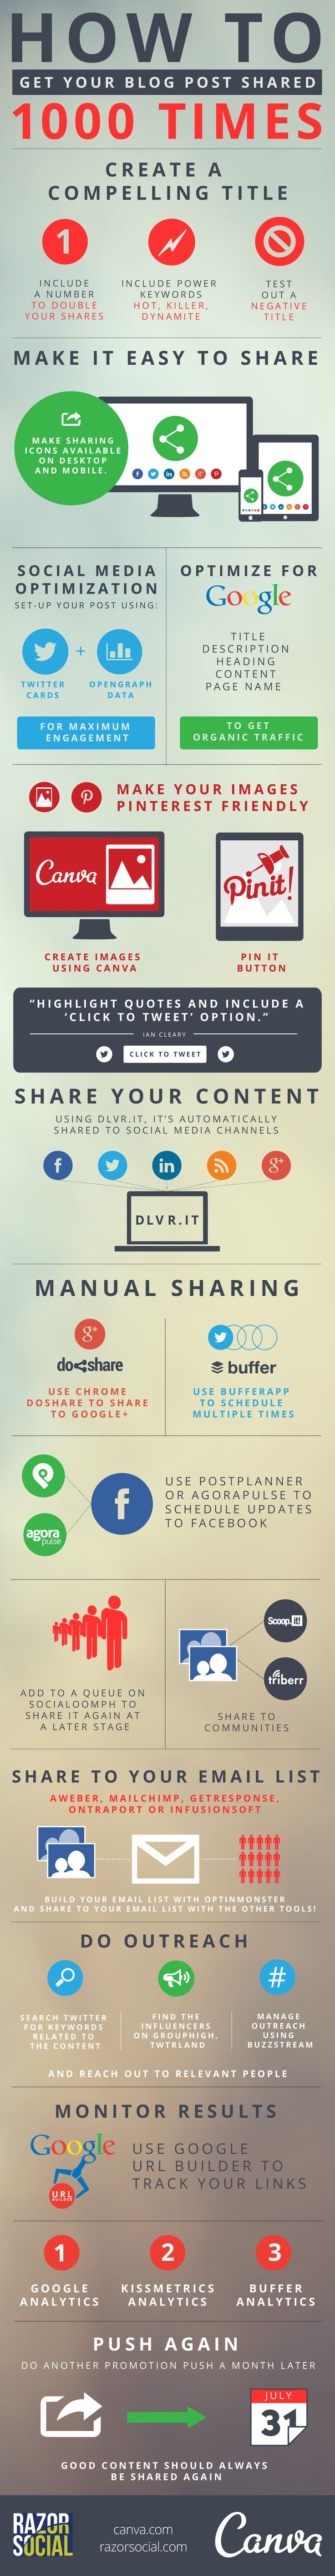 How to Promote Your Blog Content to Get 1,000 Social Media Shares - infographic ~ Digital Information World